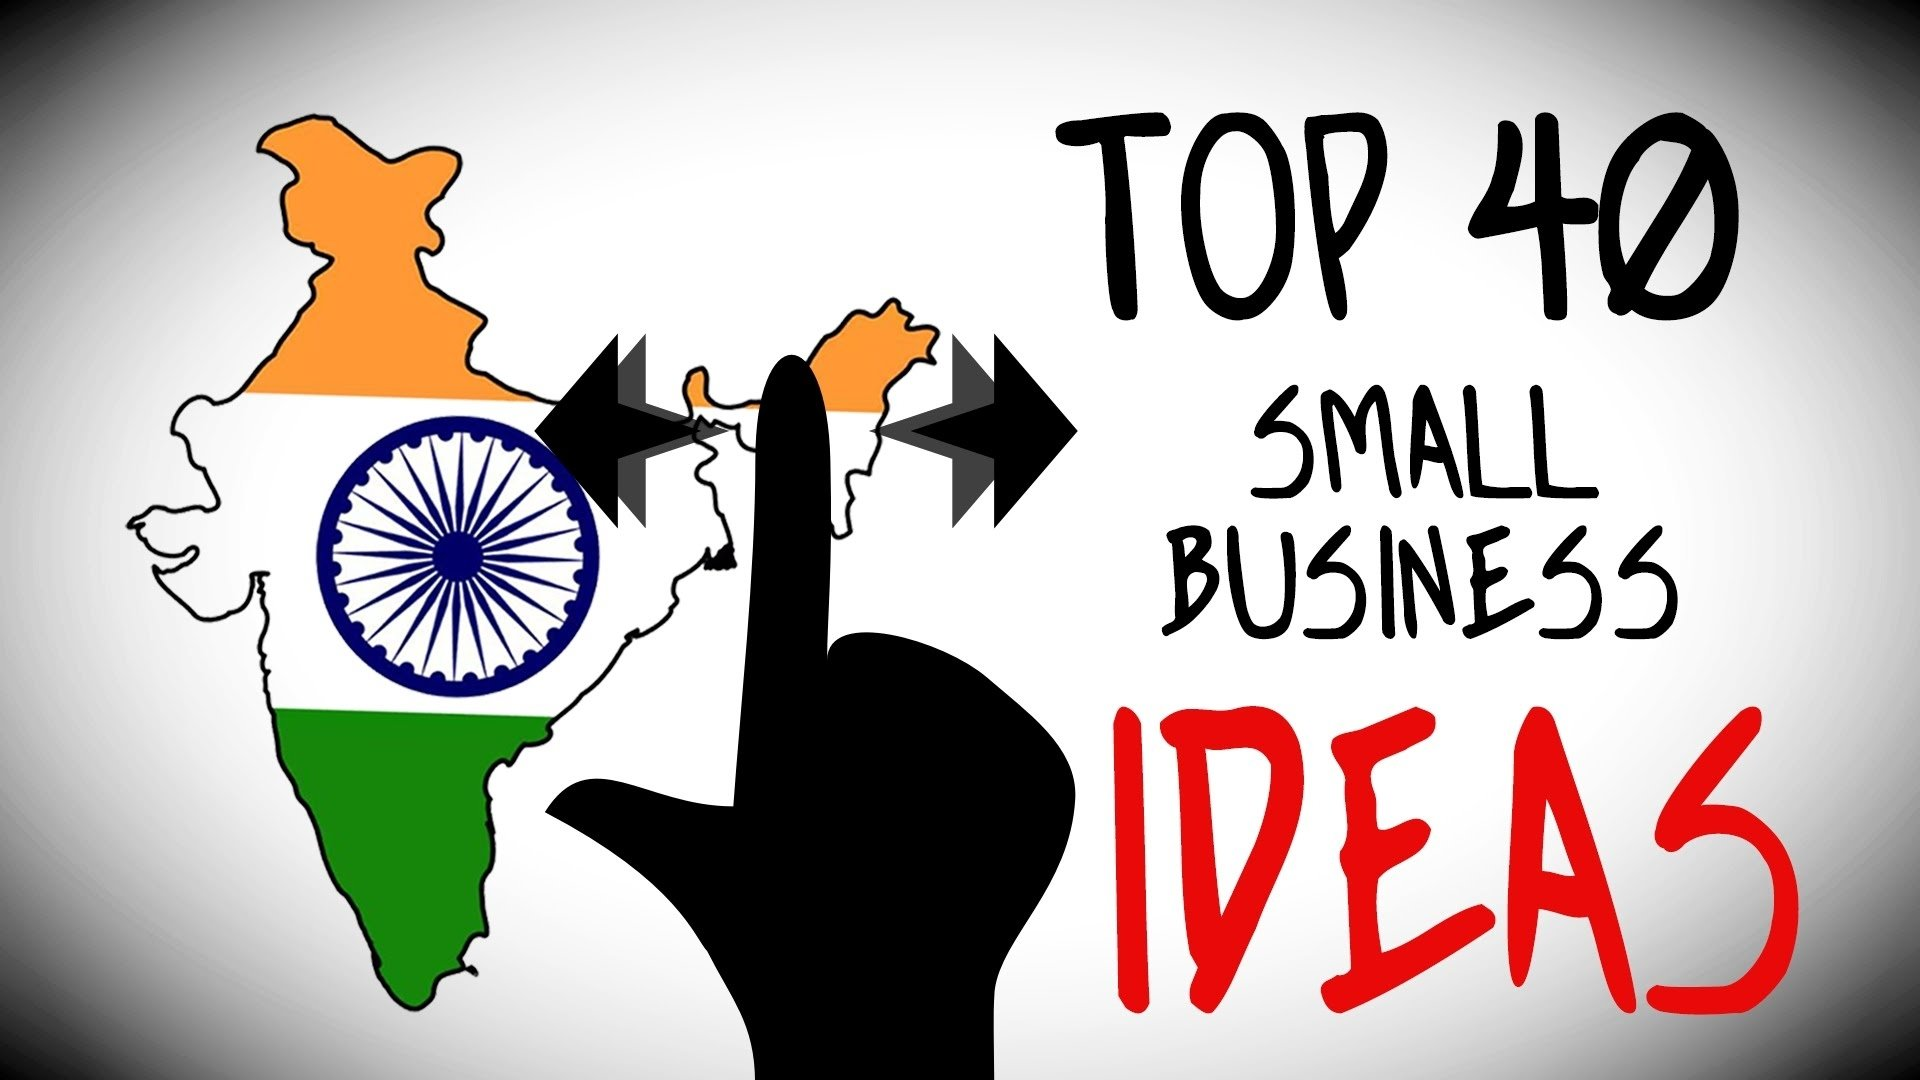 10 Stunning Best New Small Business Ideas top 40 small business ideas in india for starting your own business 18 2021